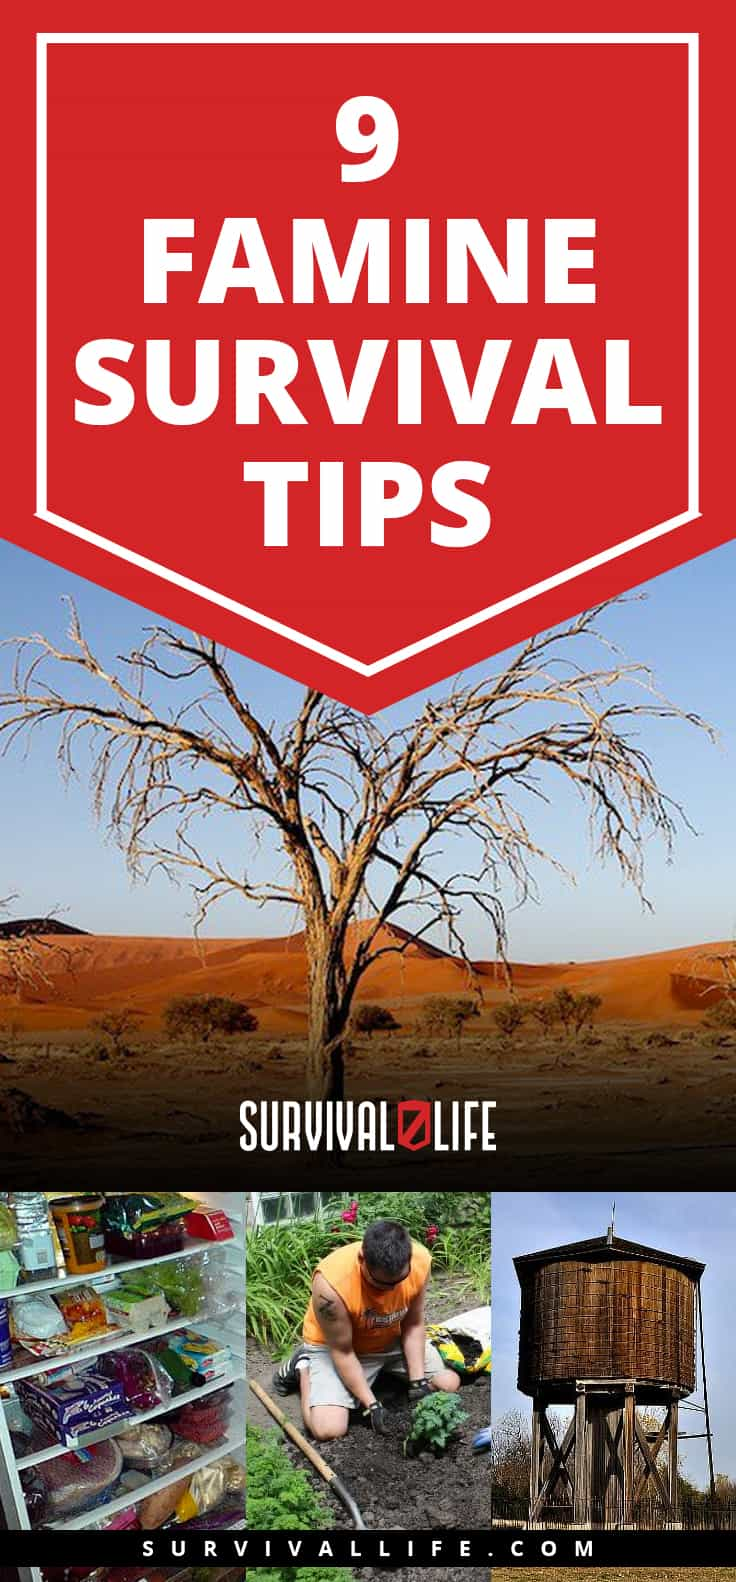 Famine Survival Tips: How To Survive Food Shortage | https://survivallife.com/famine-survival-tips/